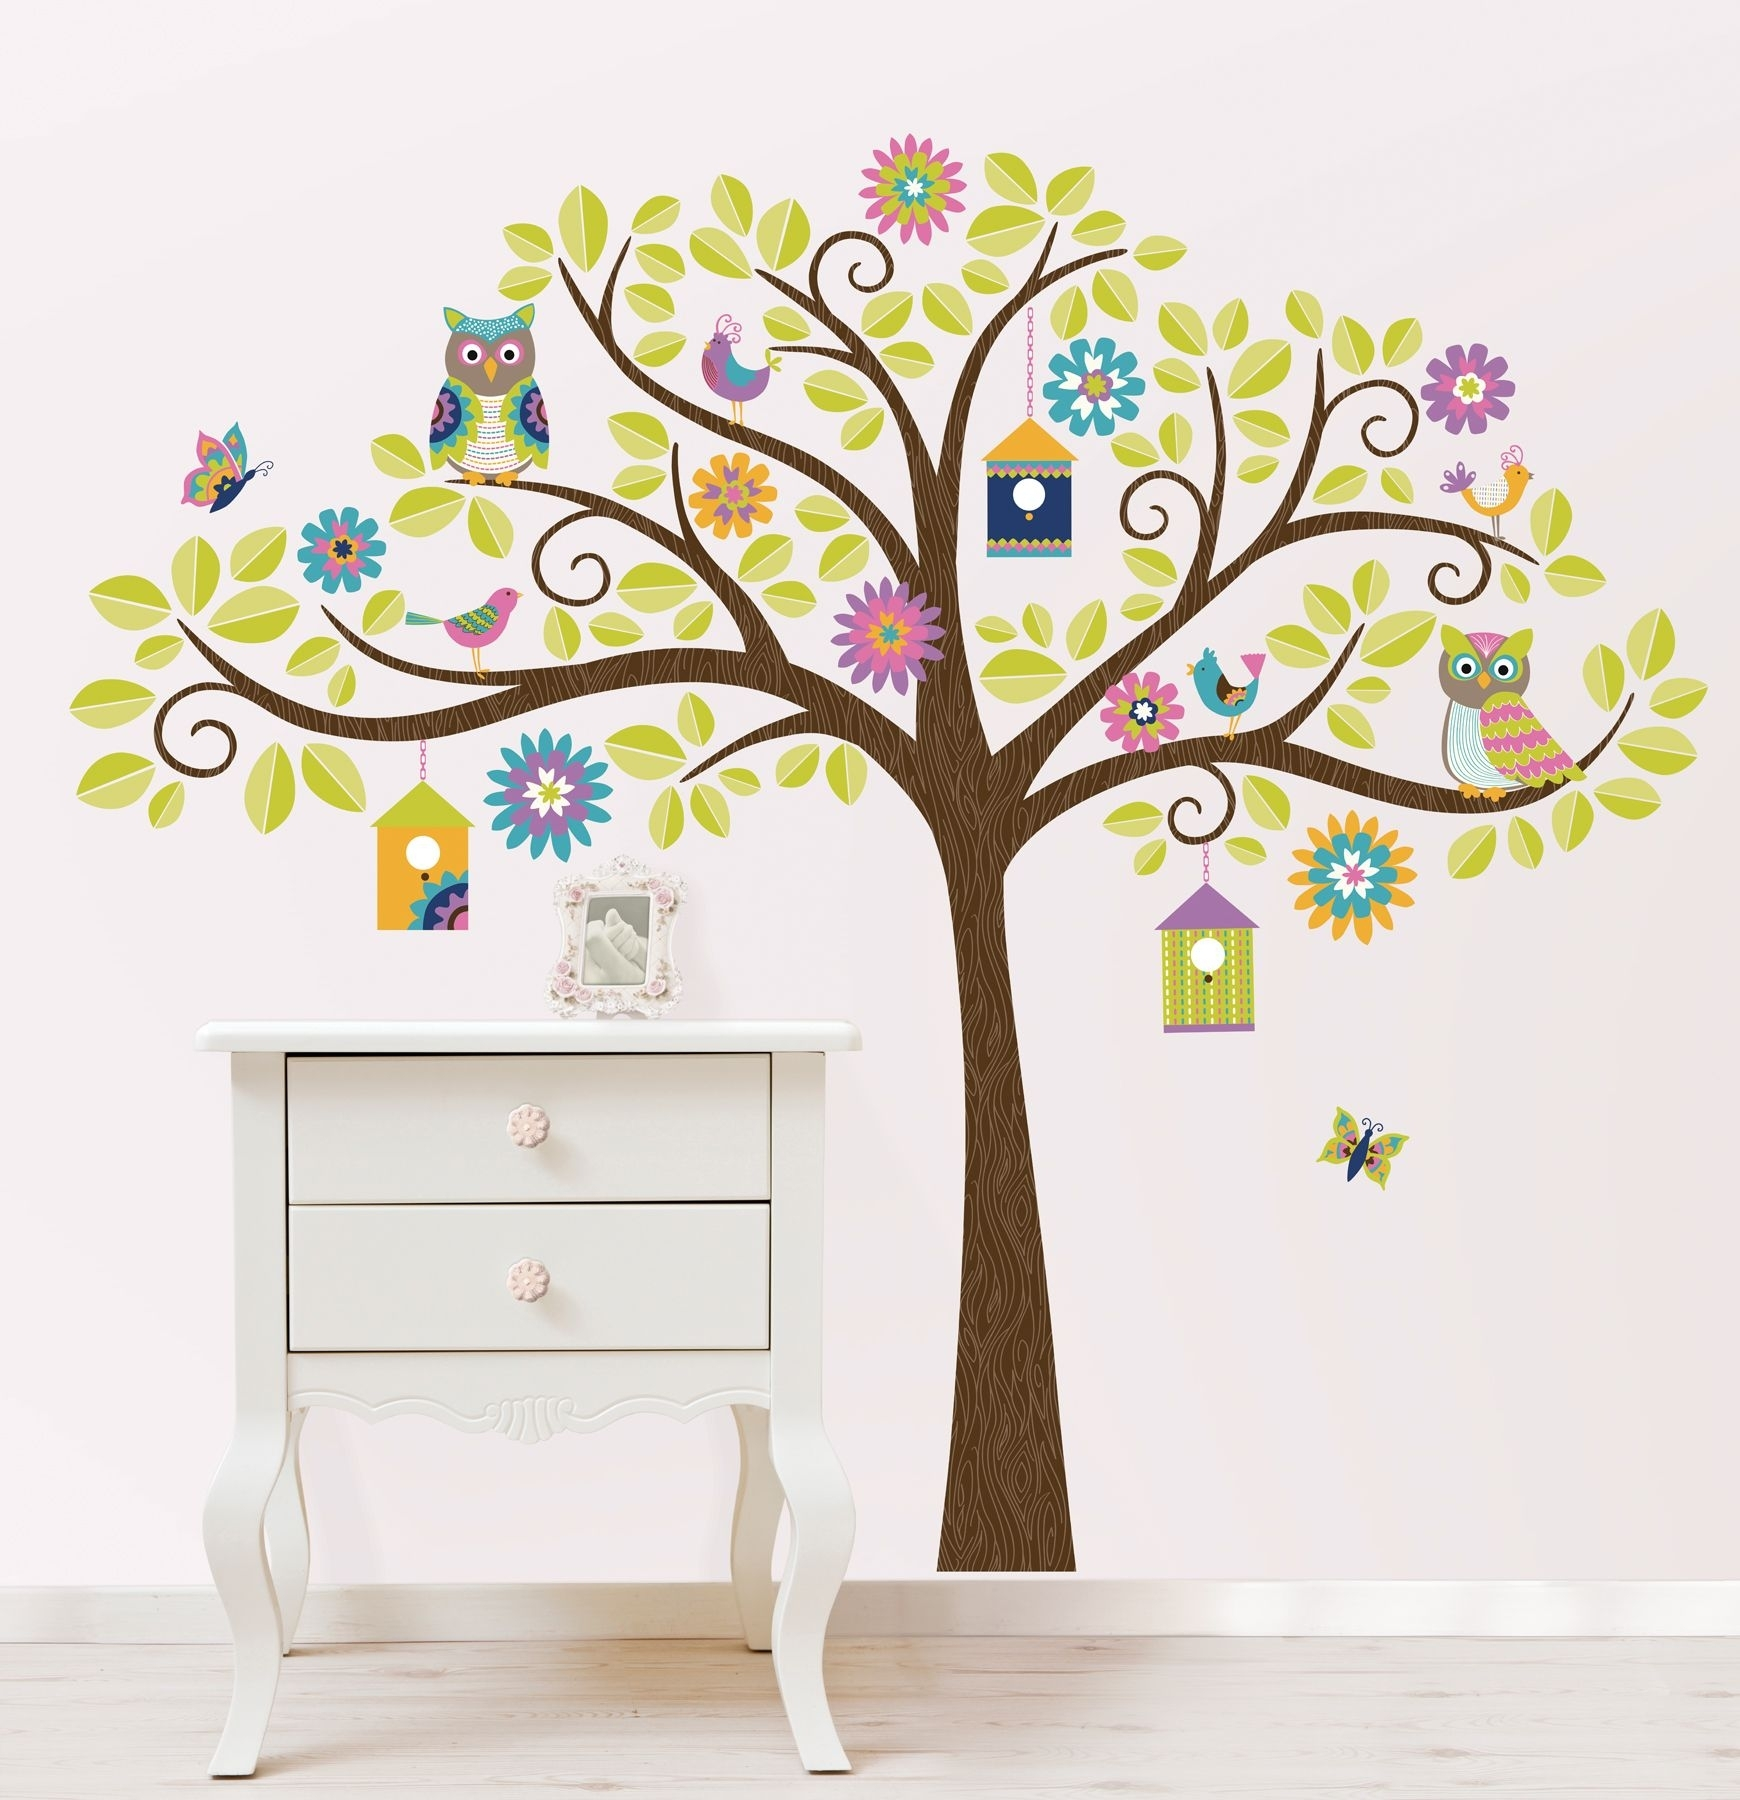 Hoot And Hang Out Tree Wall Art Sticker Kit With Best And Newest Wall Tree Art (View 14 of 20)